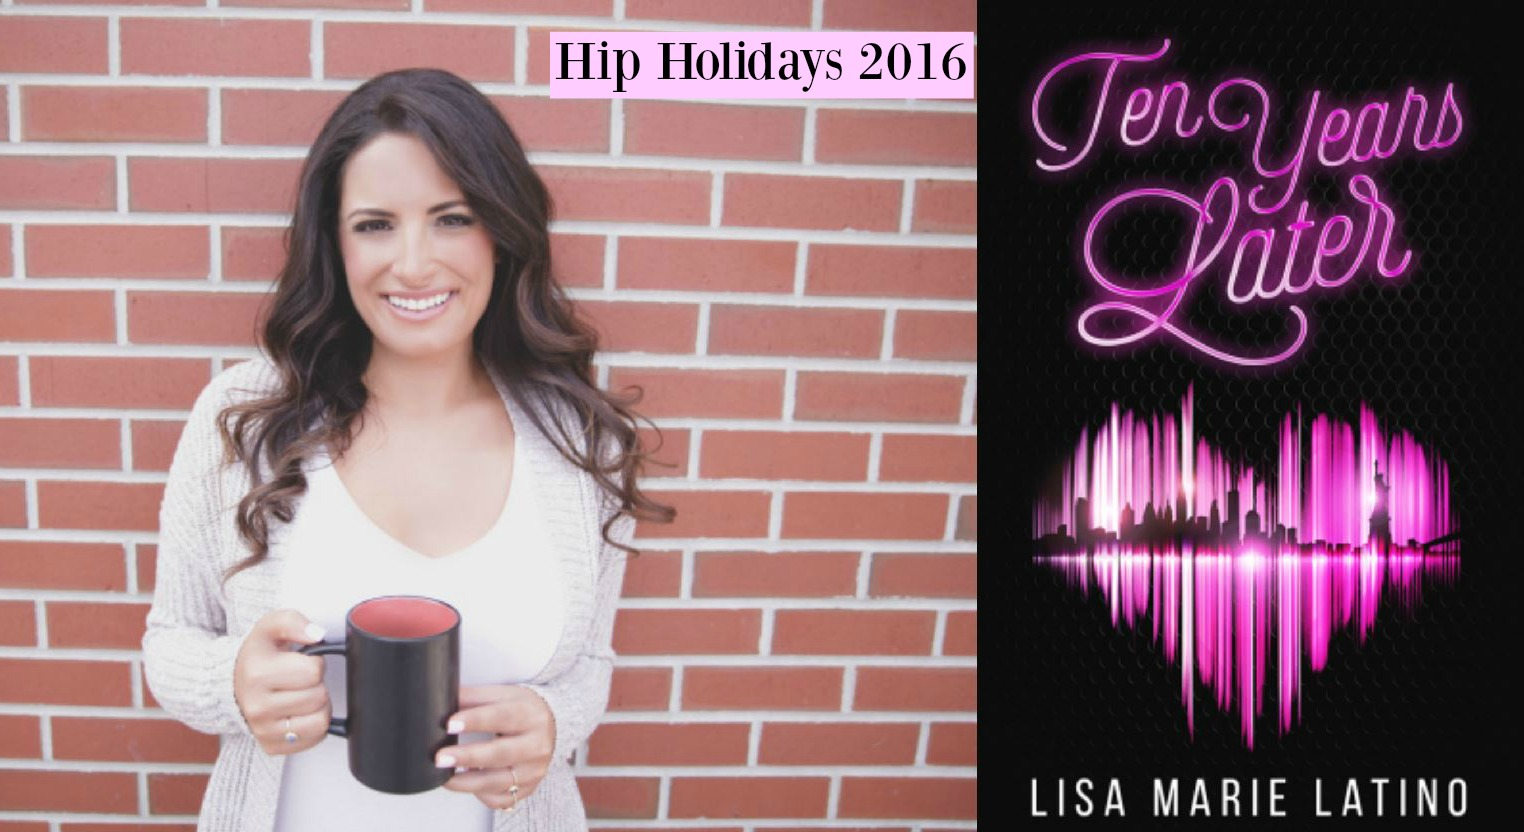 #HIPHOLIDAYS 2016: Ten Years Later by Lisa Marie Latino